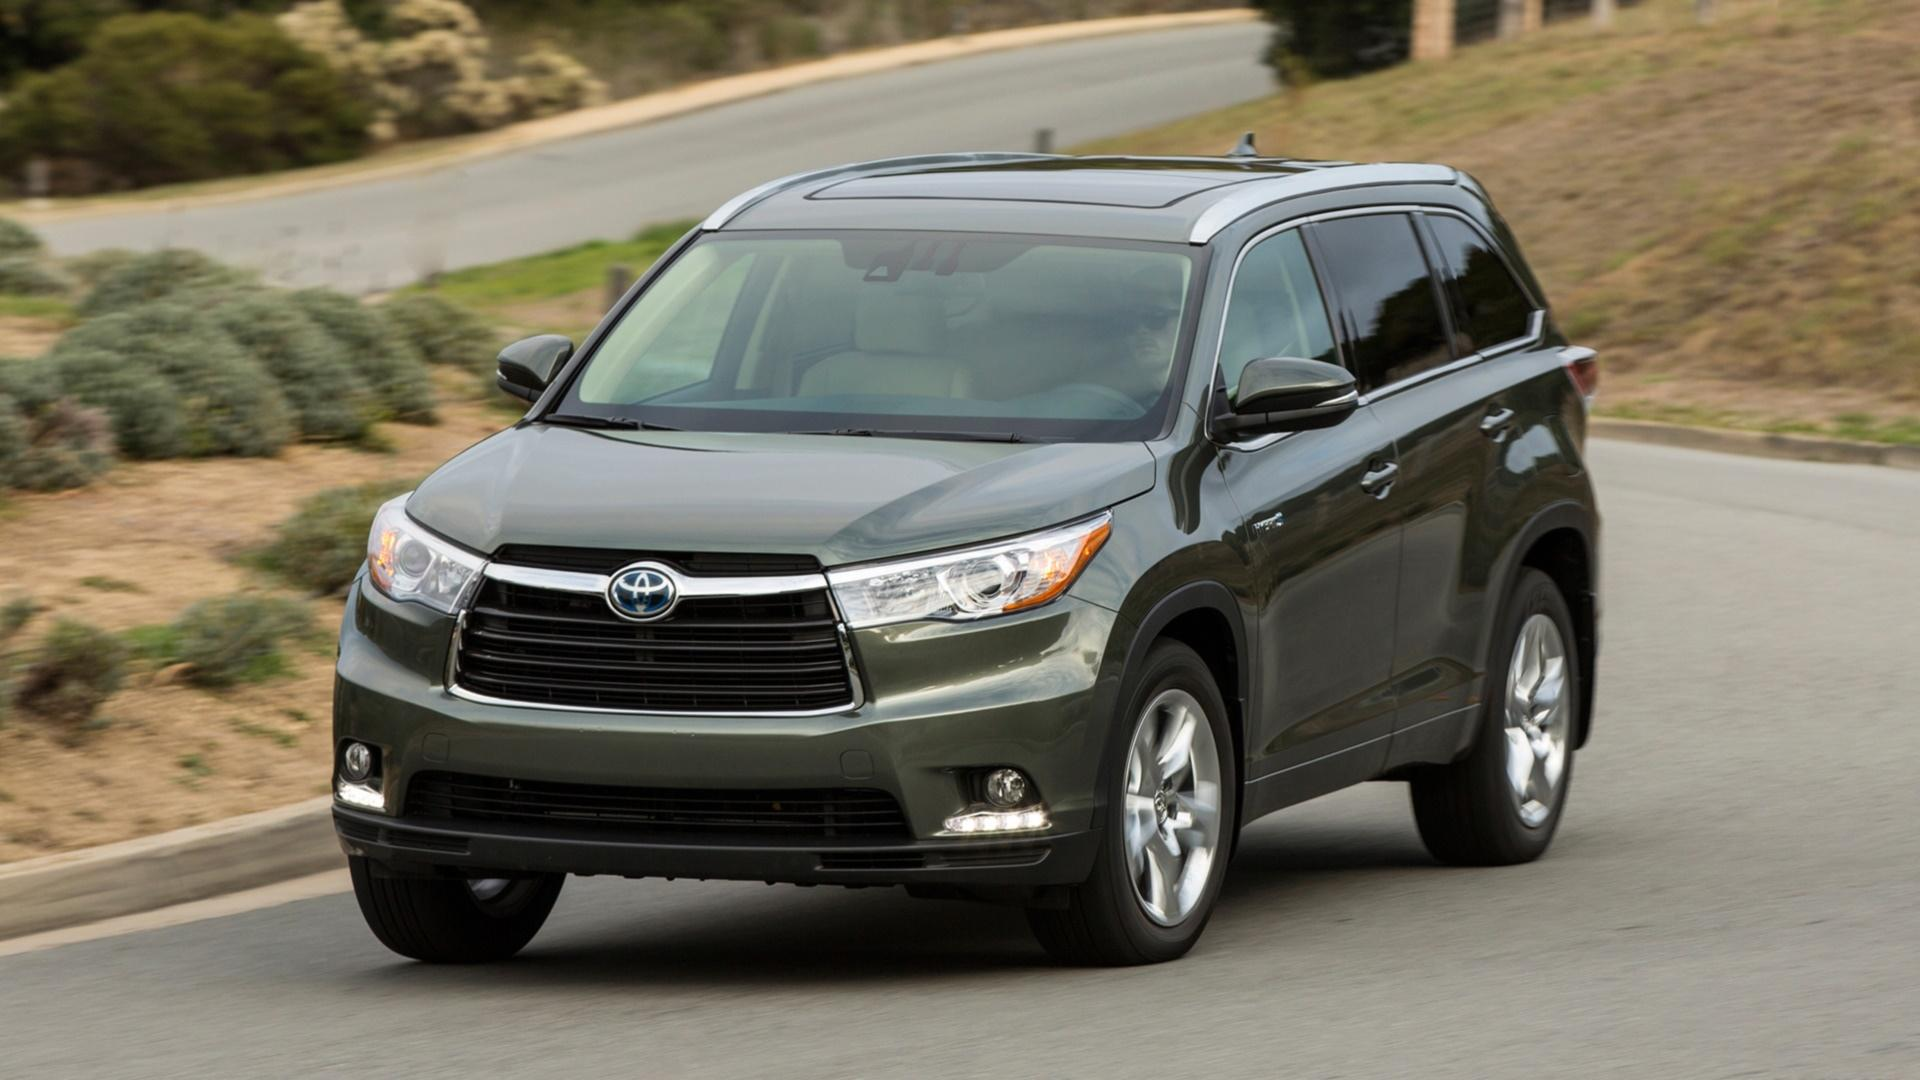 2014 toyota highlander hybrid wallpaper hd download. Black Bedroom Furniture Sets. Home Design Ideas